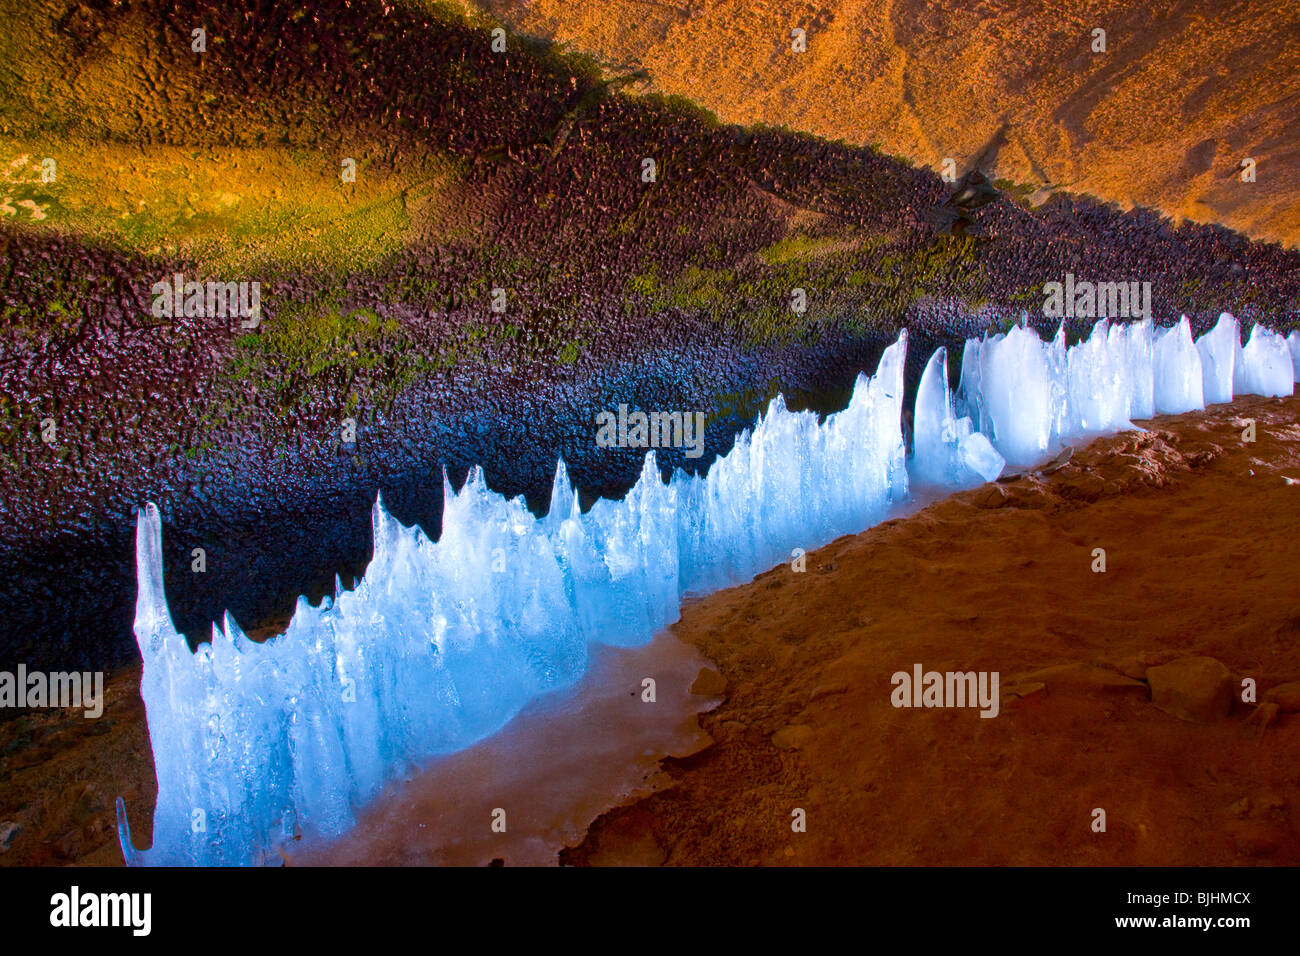 Ice forms along a spring, Arches National Park, Utah, inside large cave in winter - Stock Image